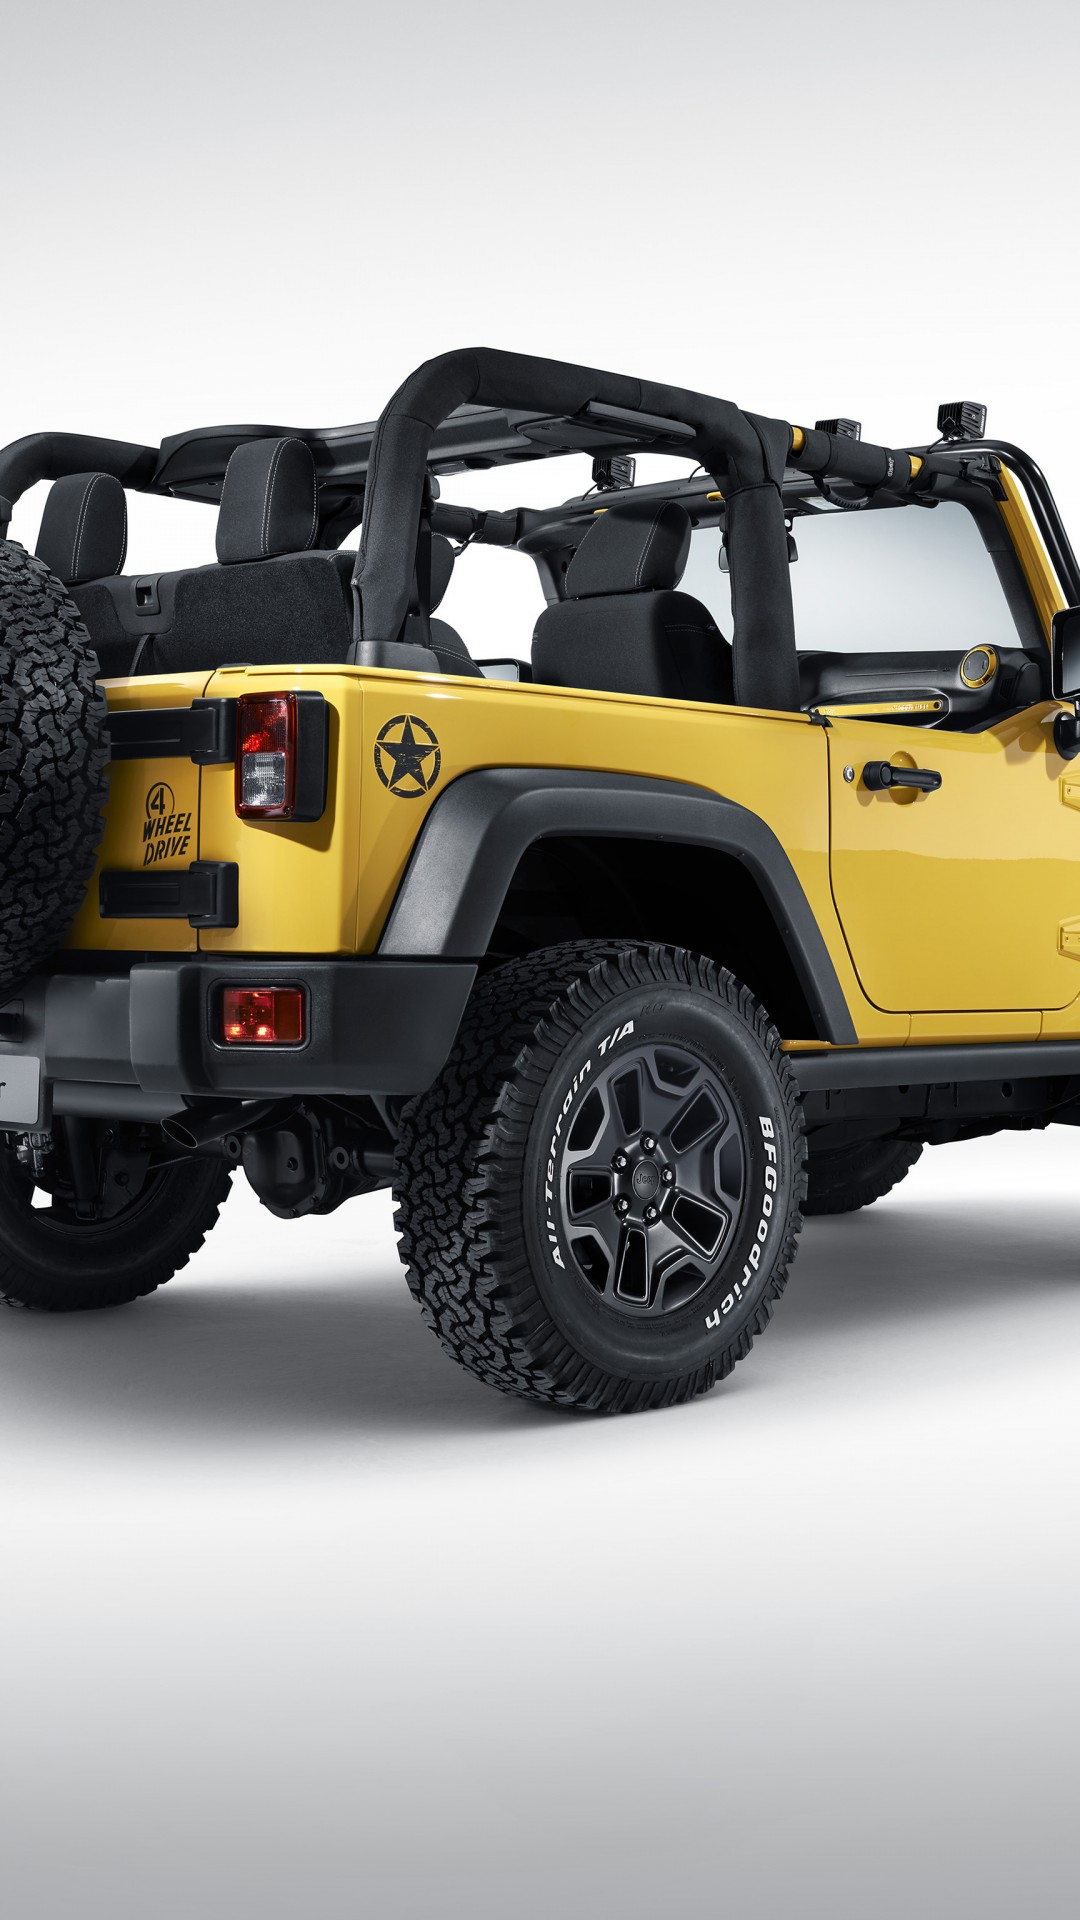 Silver Jeep Wrangler >> Wallpaper Jeep Wrangler Rubicon Rocks Star, crossover, SUV ...